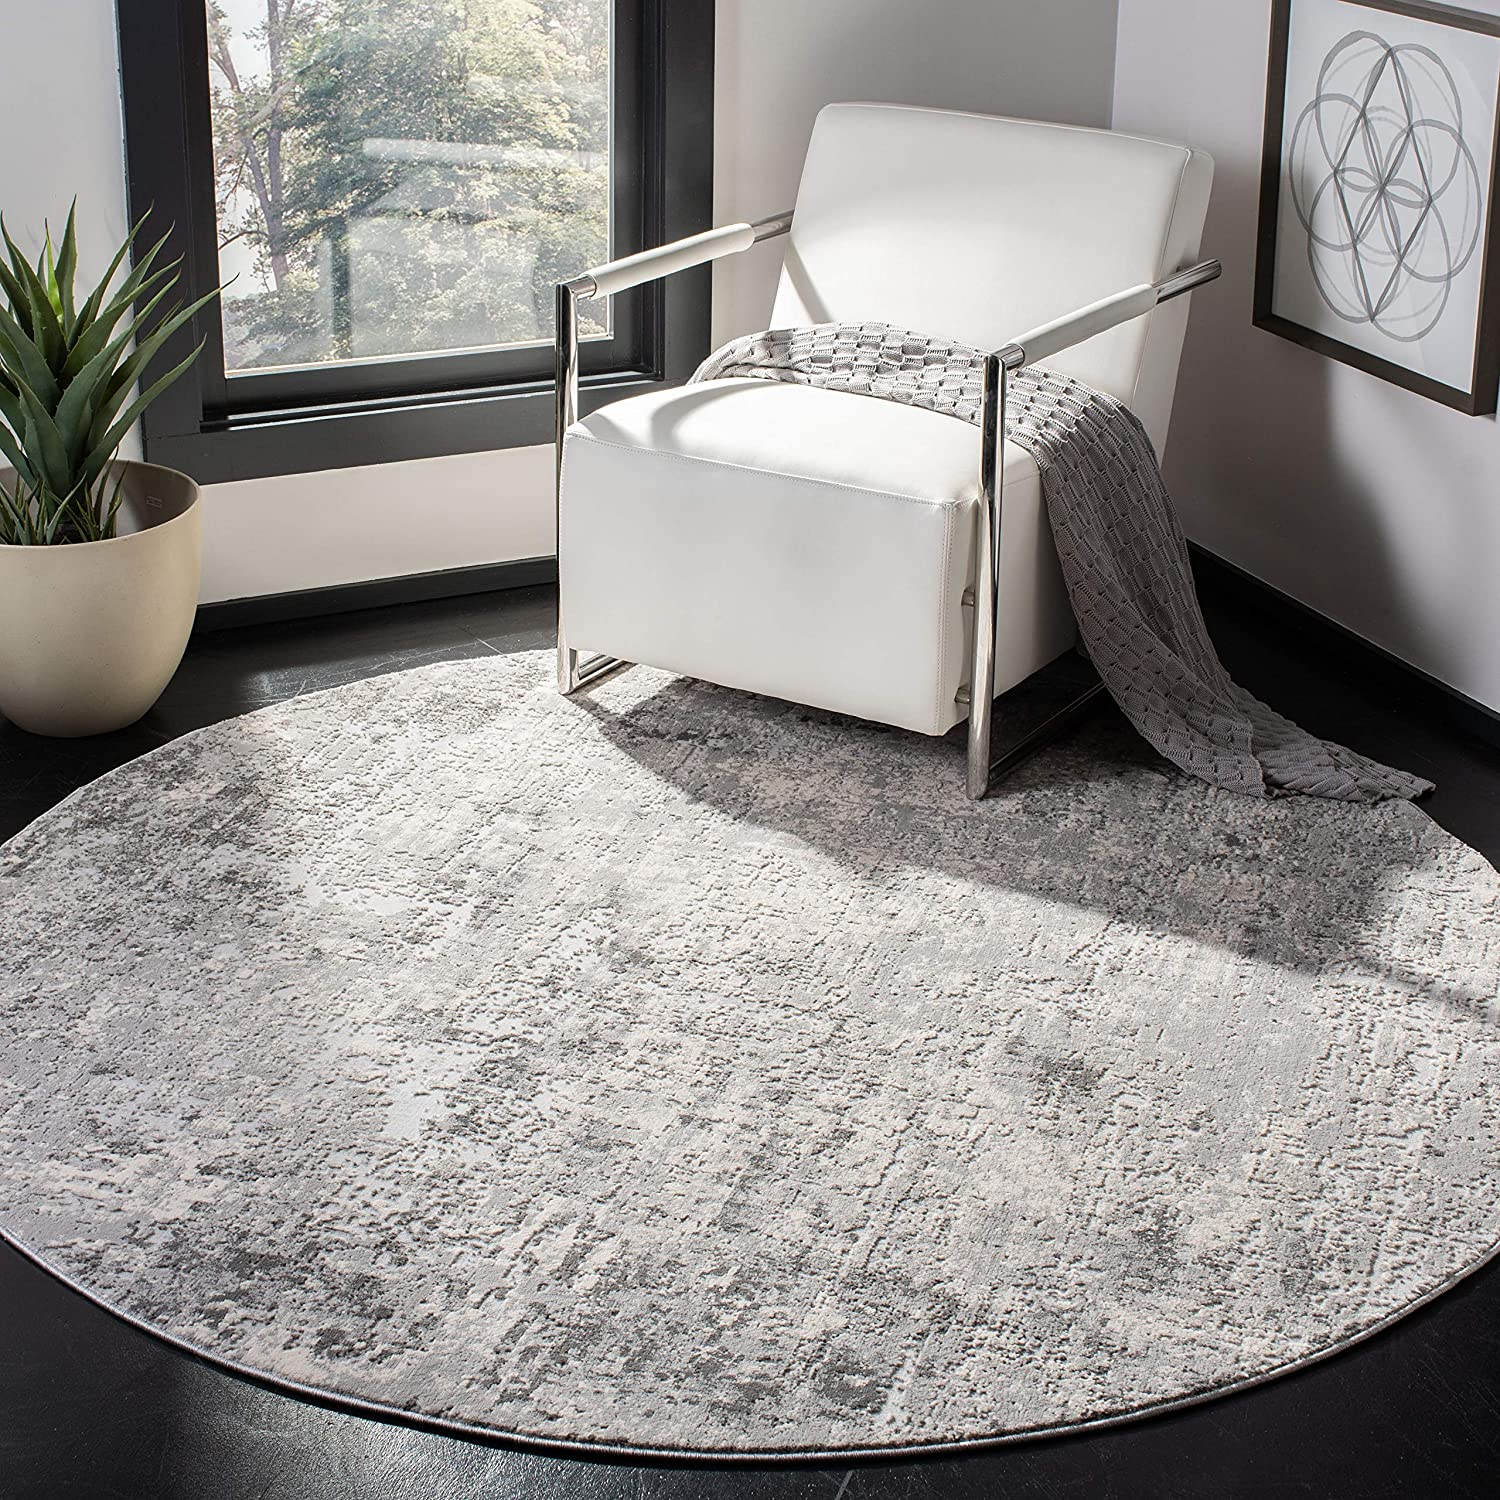 Safavieh Invista Collection Inv413g Modern Abstract Area Rug 6 7 X 6 7 Round Grey Ivory Furniture Decor